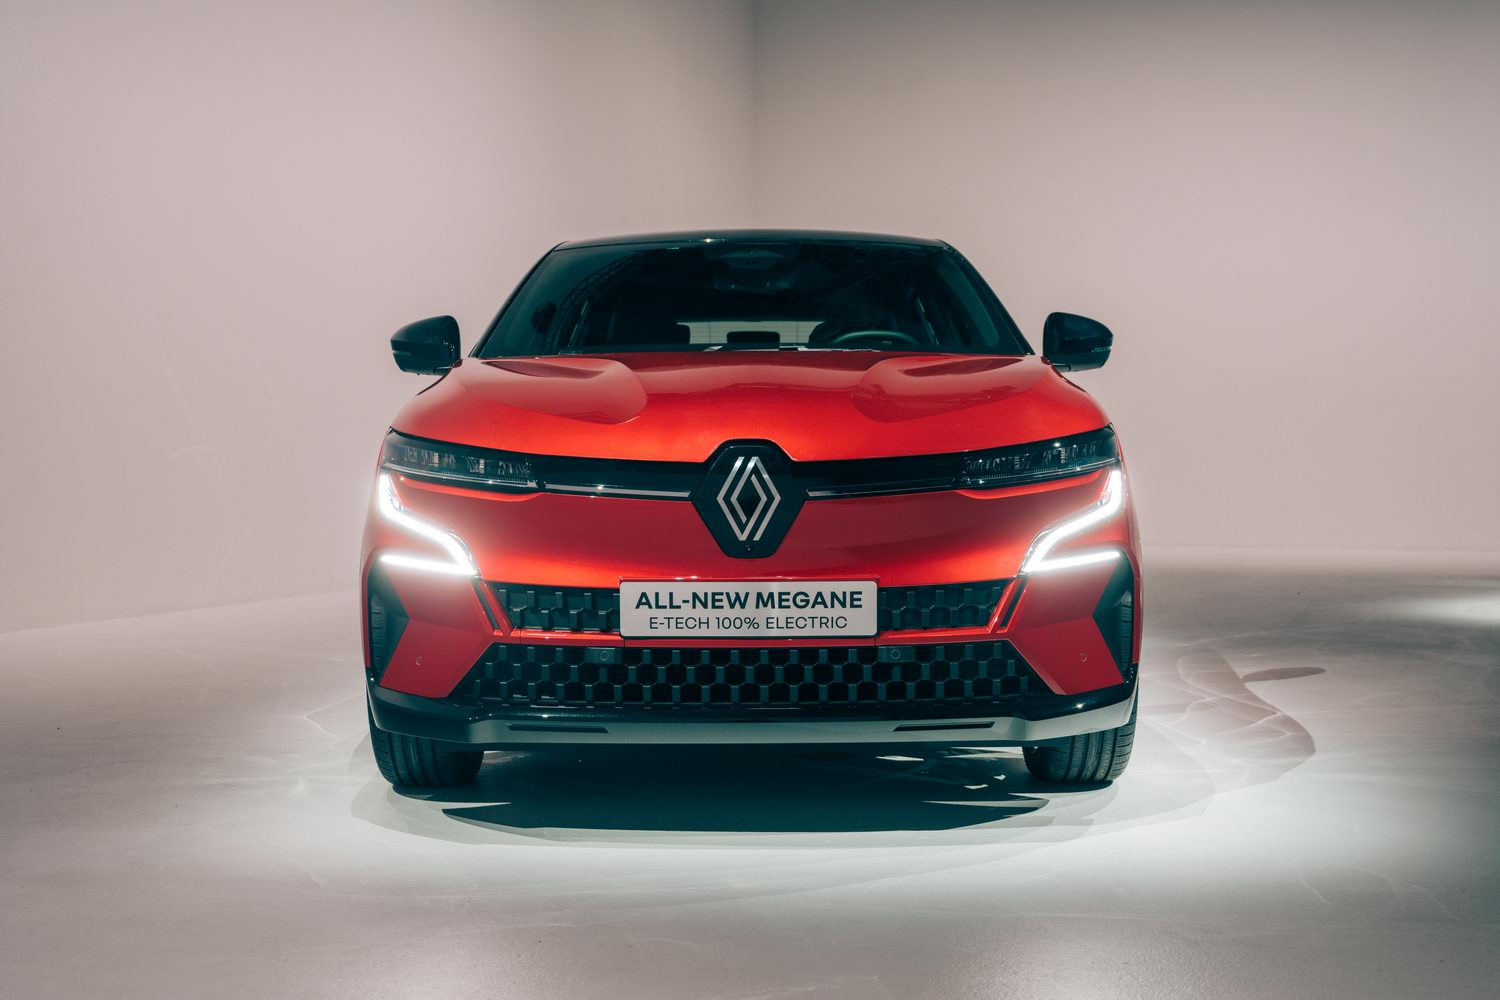 Car News | An all-electric Renault Megane for Ireland in 2022 | CompleteCar.ie